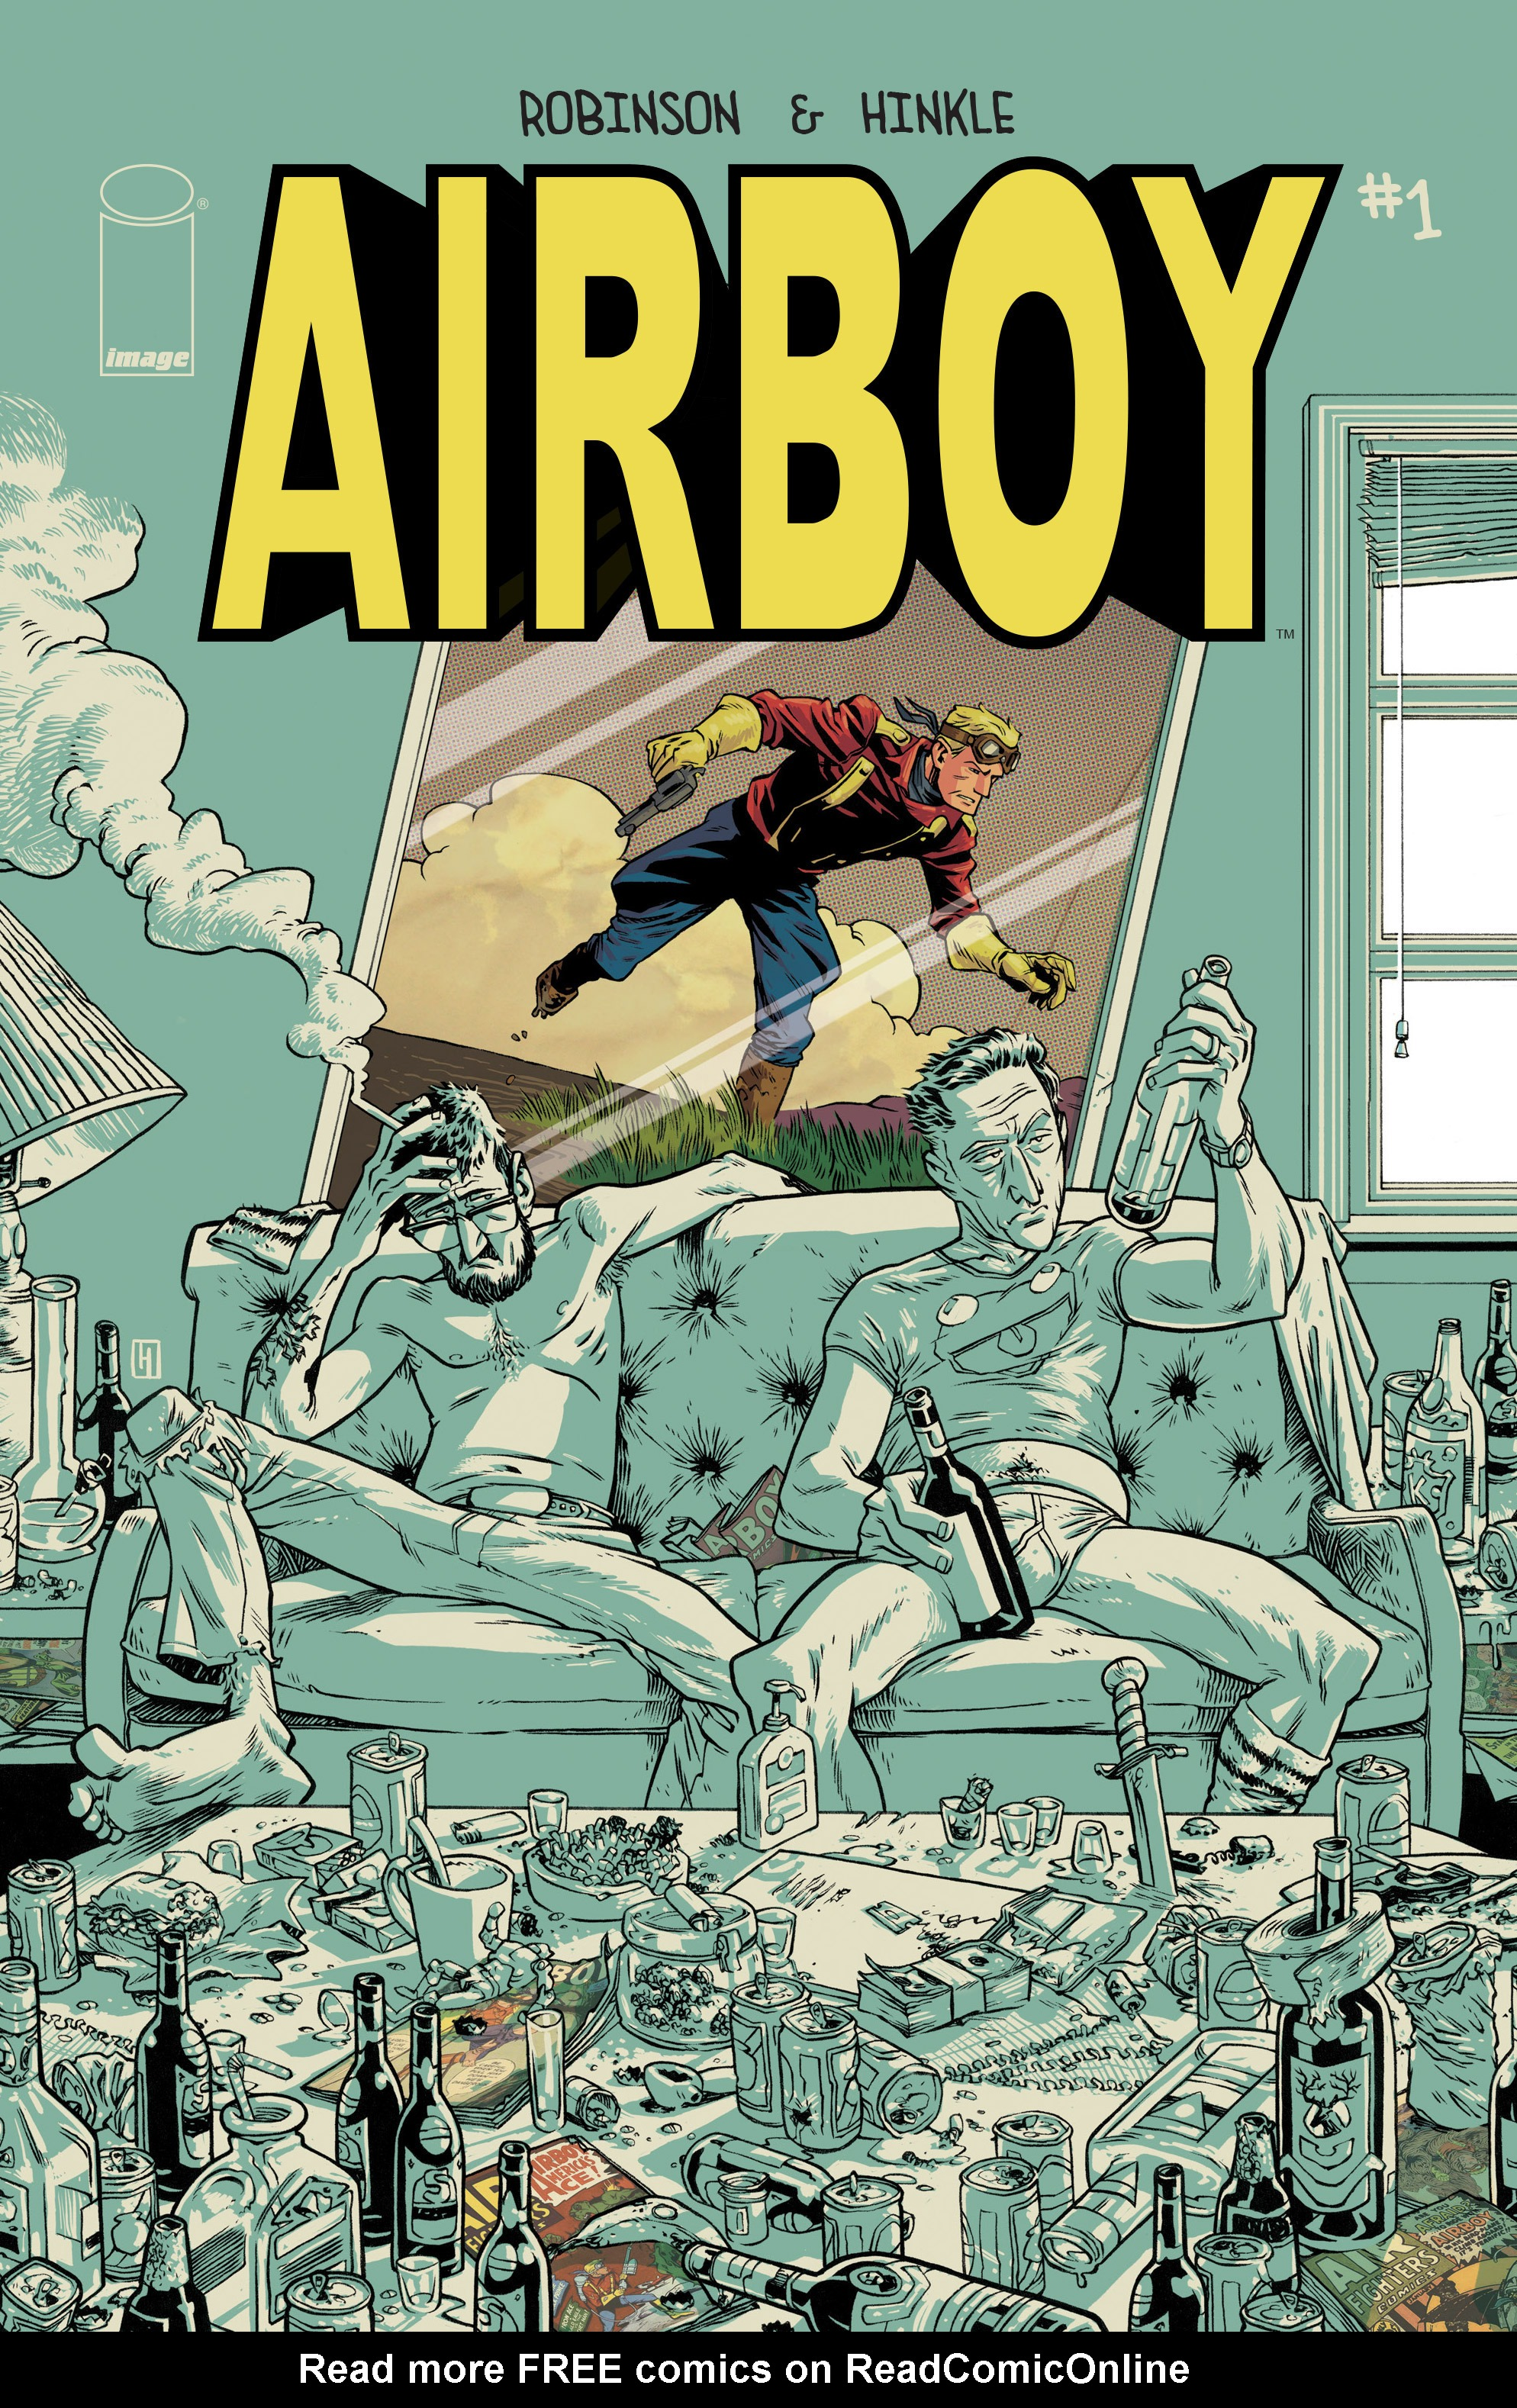 Read online Airboy comic -  Issue #1 - 1